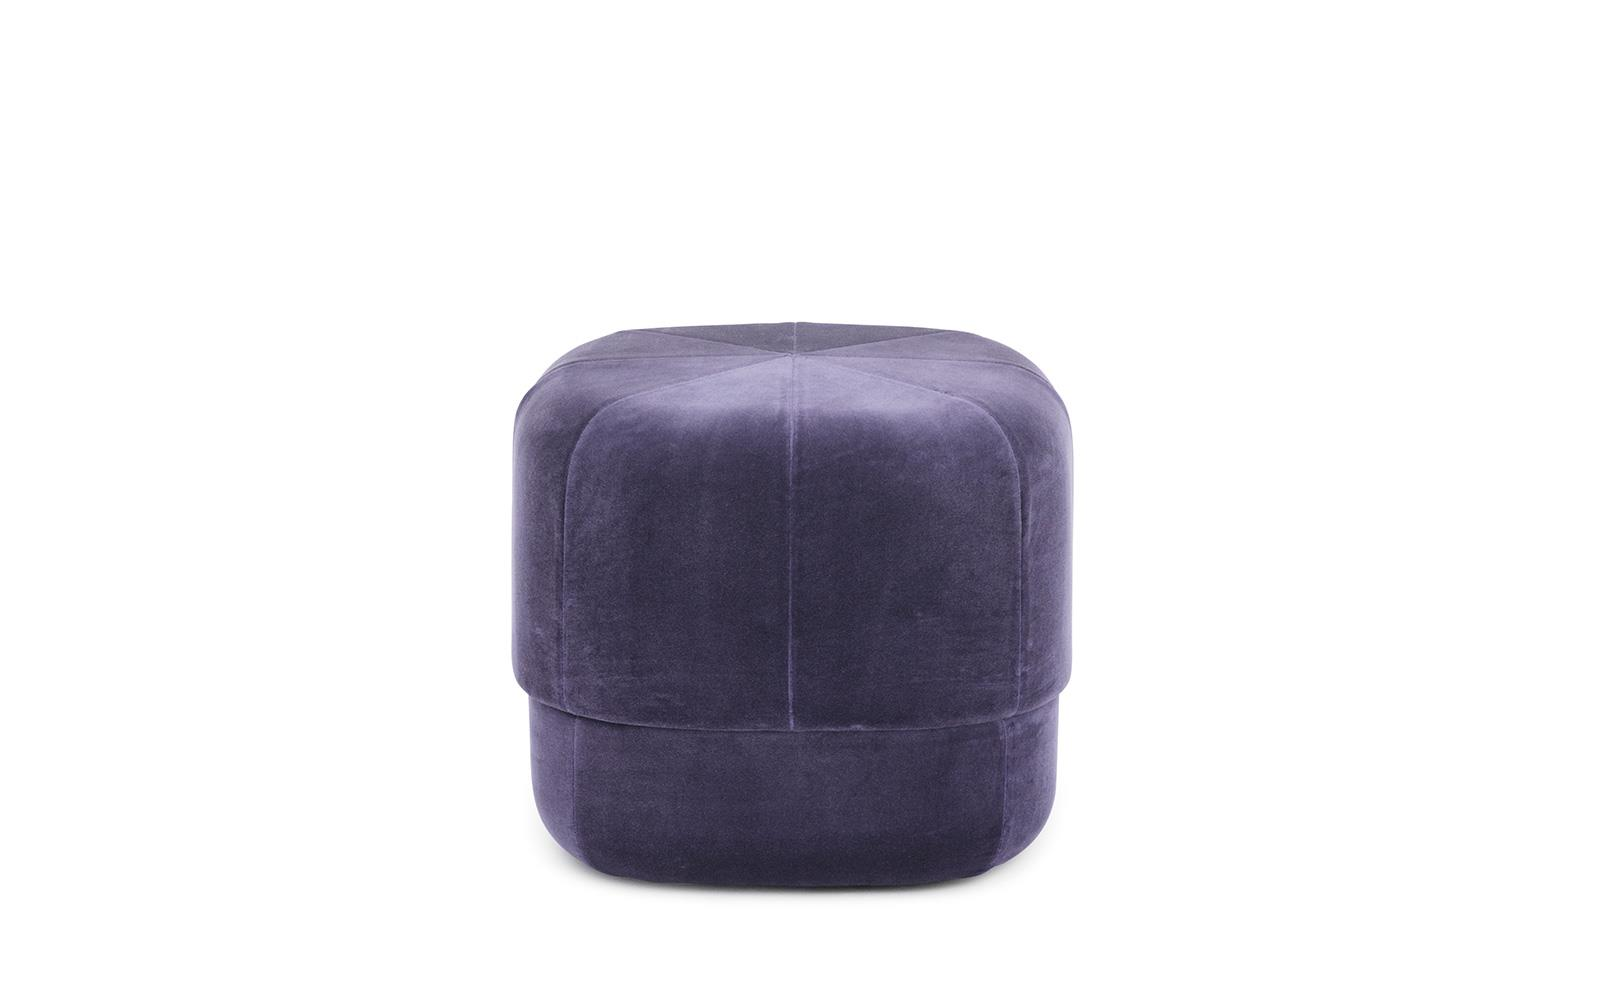 Circus Pouf small in purple velour – Nordic Moroccan pouf